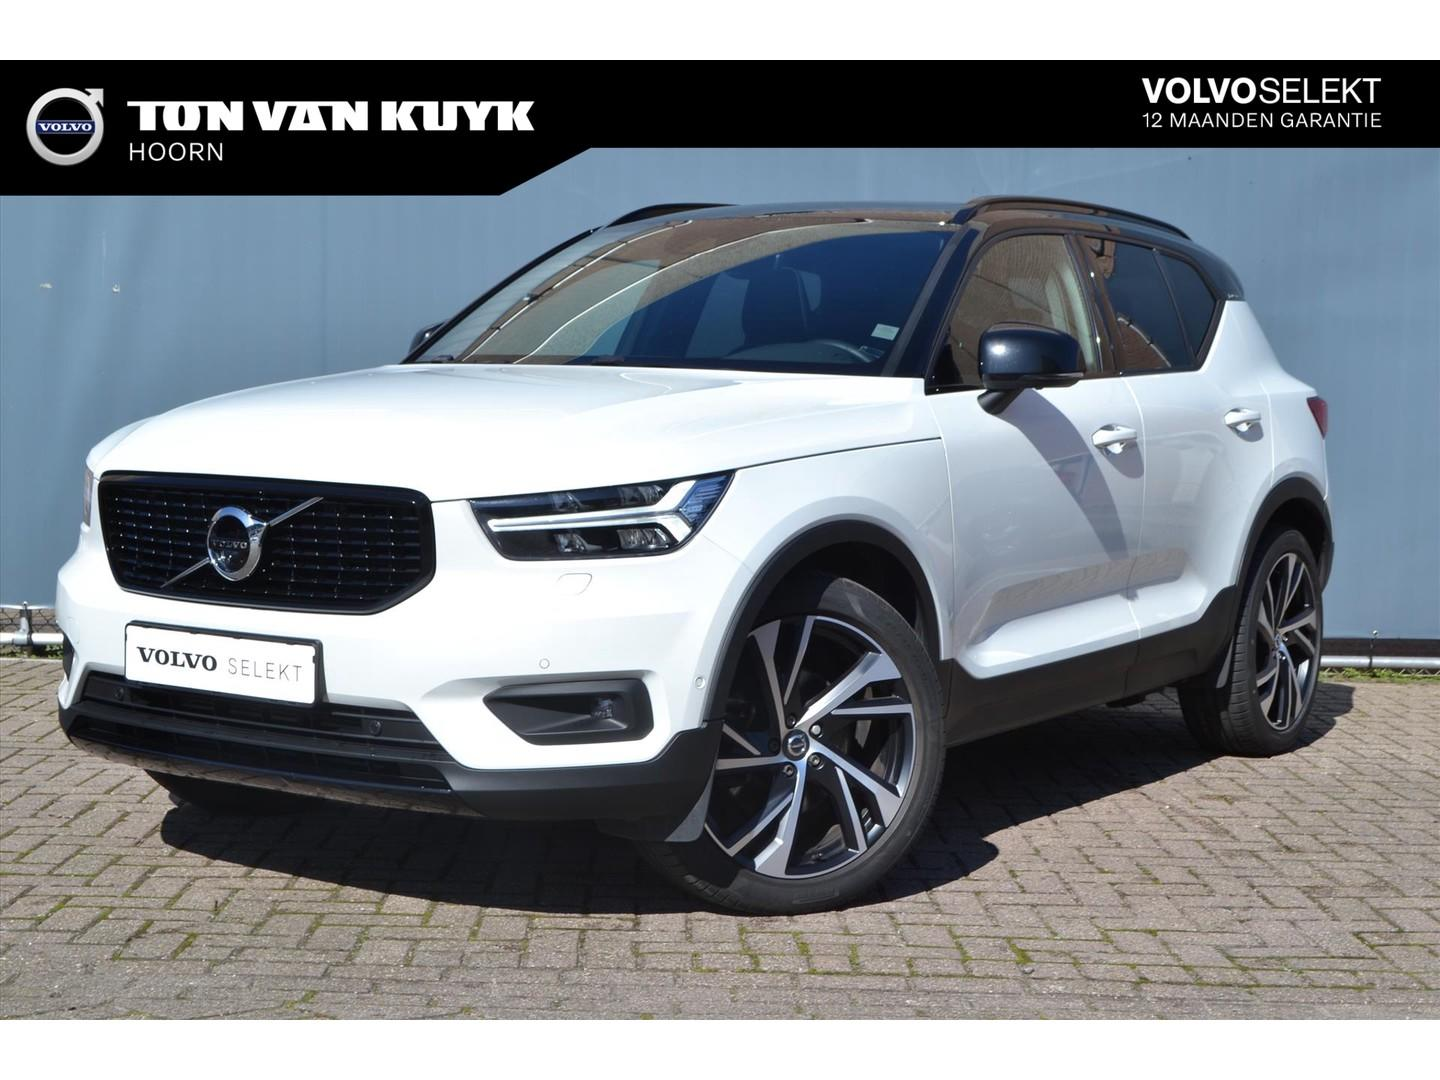 Volvo Xc40 T5 awd geartr. r-design intro edition